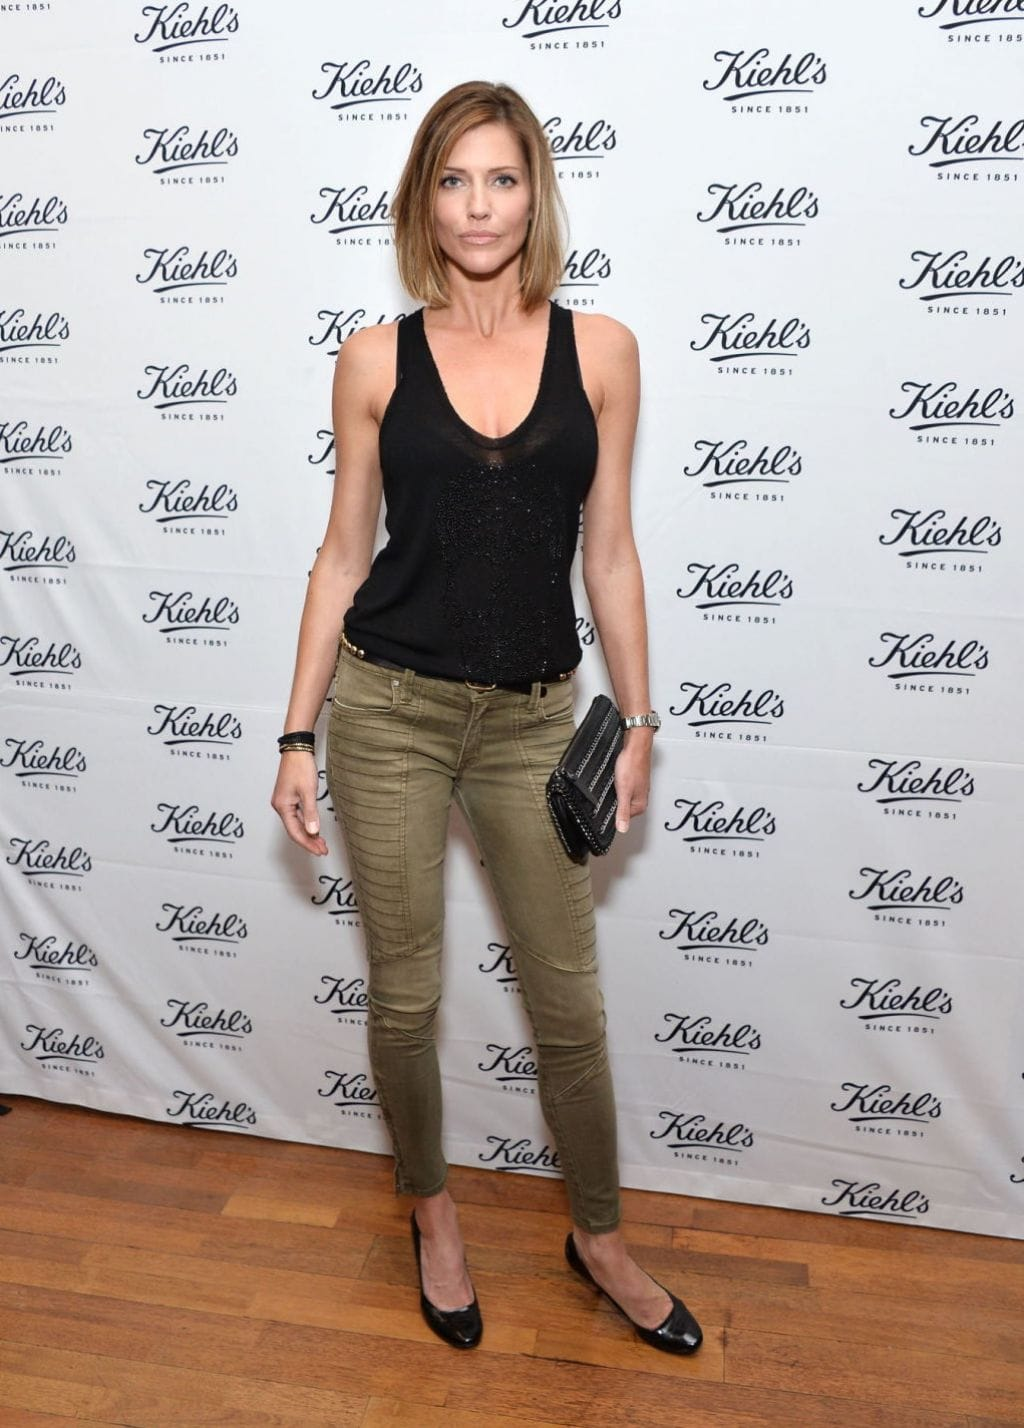 tricia helfer height in feet